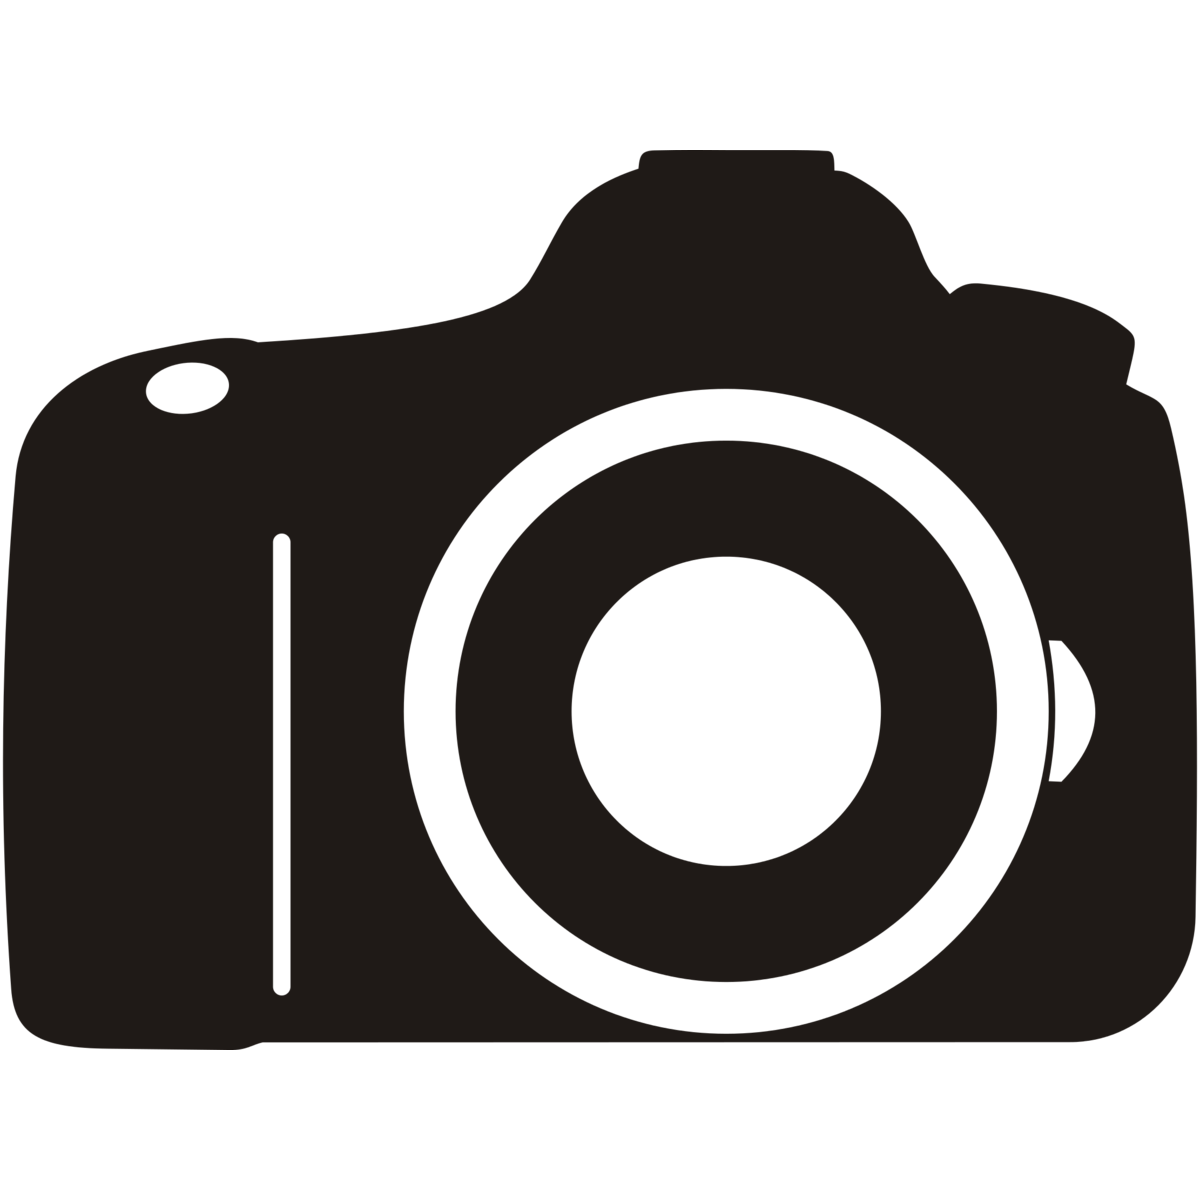 jpg or png for photography